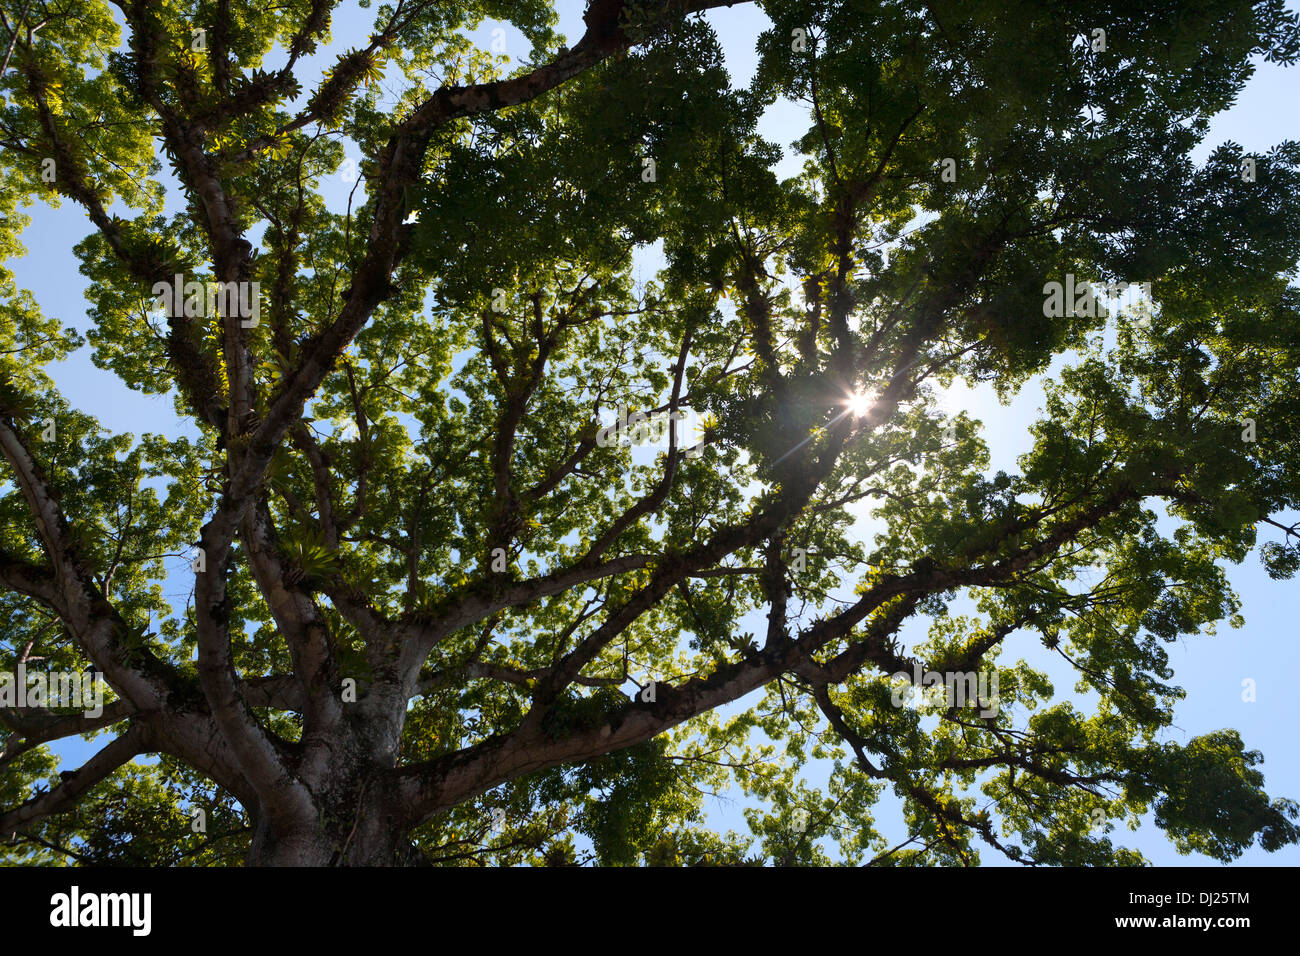 Large tropical mahogany tree in Costa Rica with sun shining through. - Stock Image